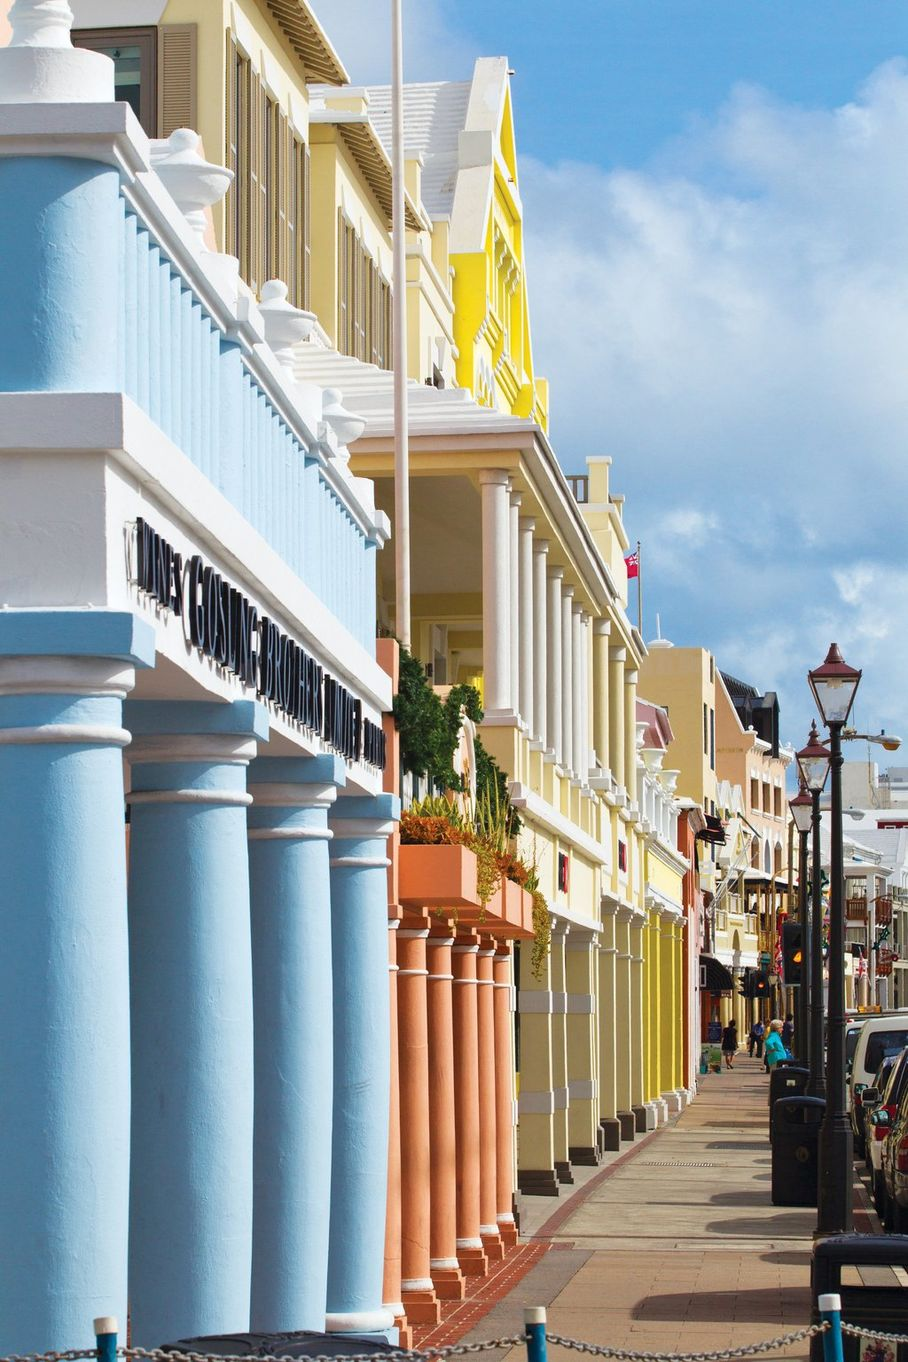 011213-Escapes-Bermuda-Front-Street